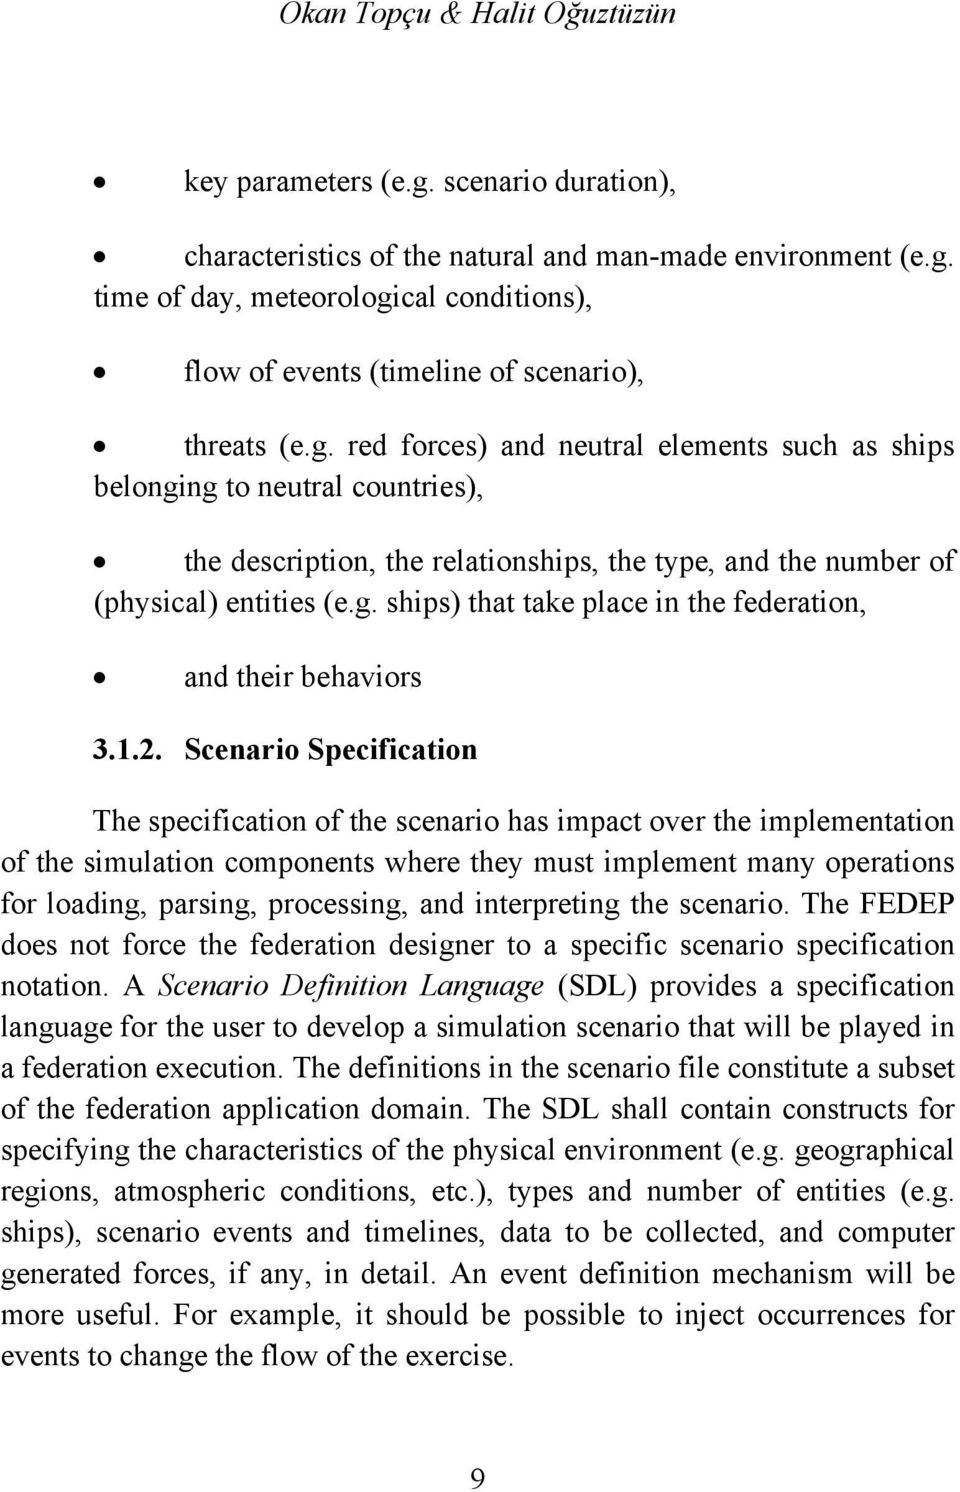 1.2. Scenario Specification The specification of the scenario has impact over the implementation of the simulation components where they must implement many operations for loading, parsing,